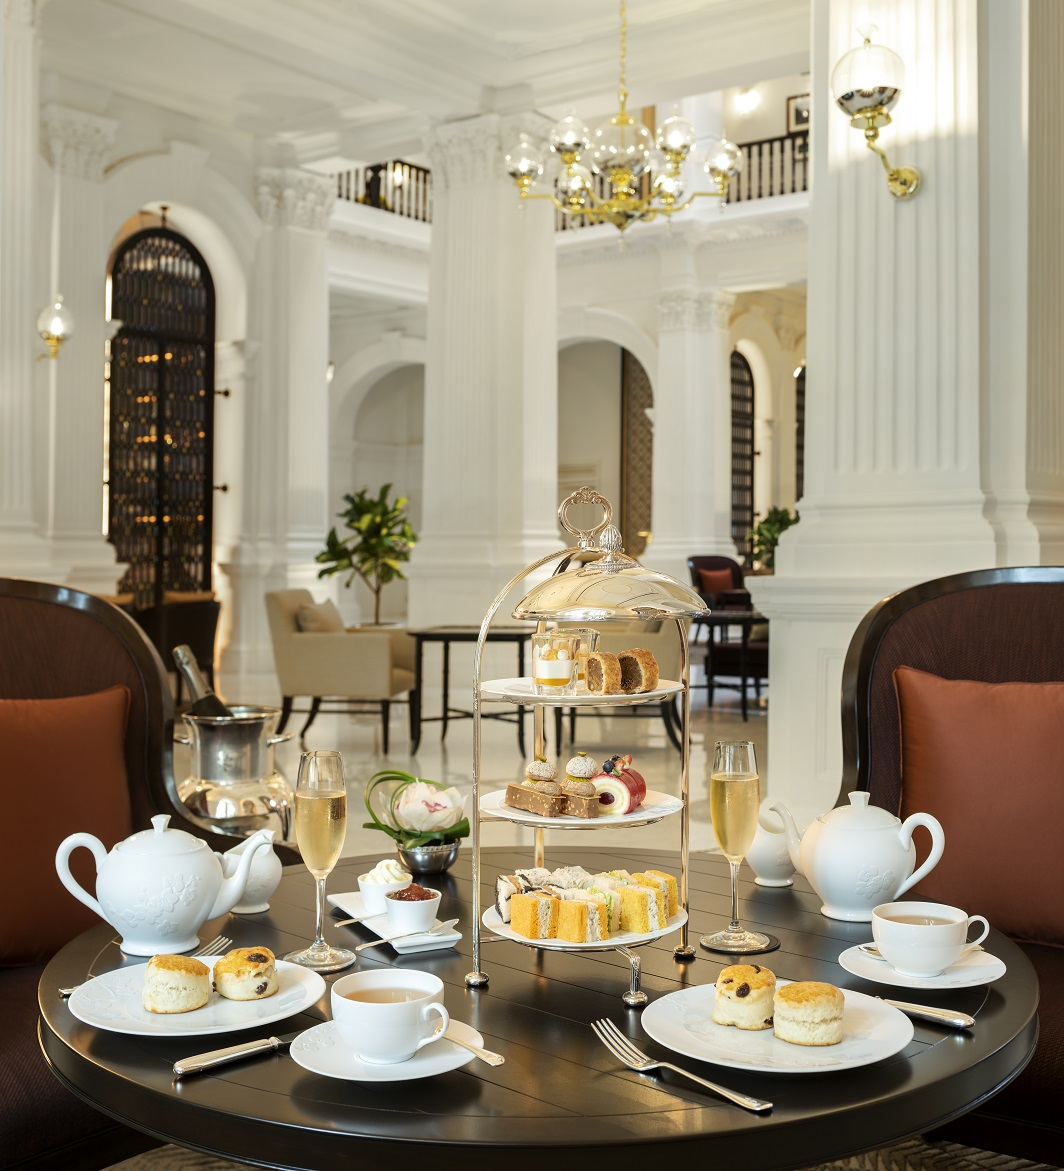 Easter Afternoon Tea will be available from April 2-4. Photo courtesy: Raffles Hotel Singapore